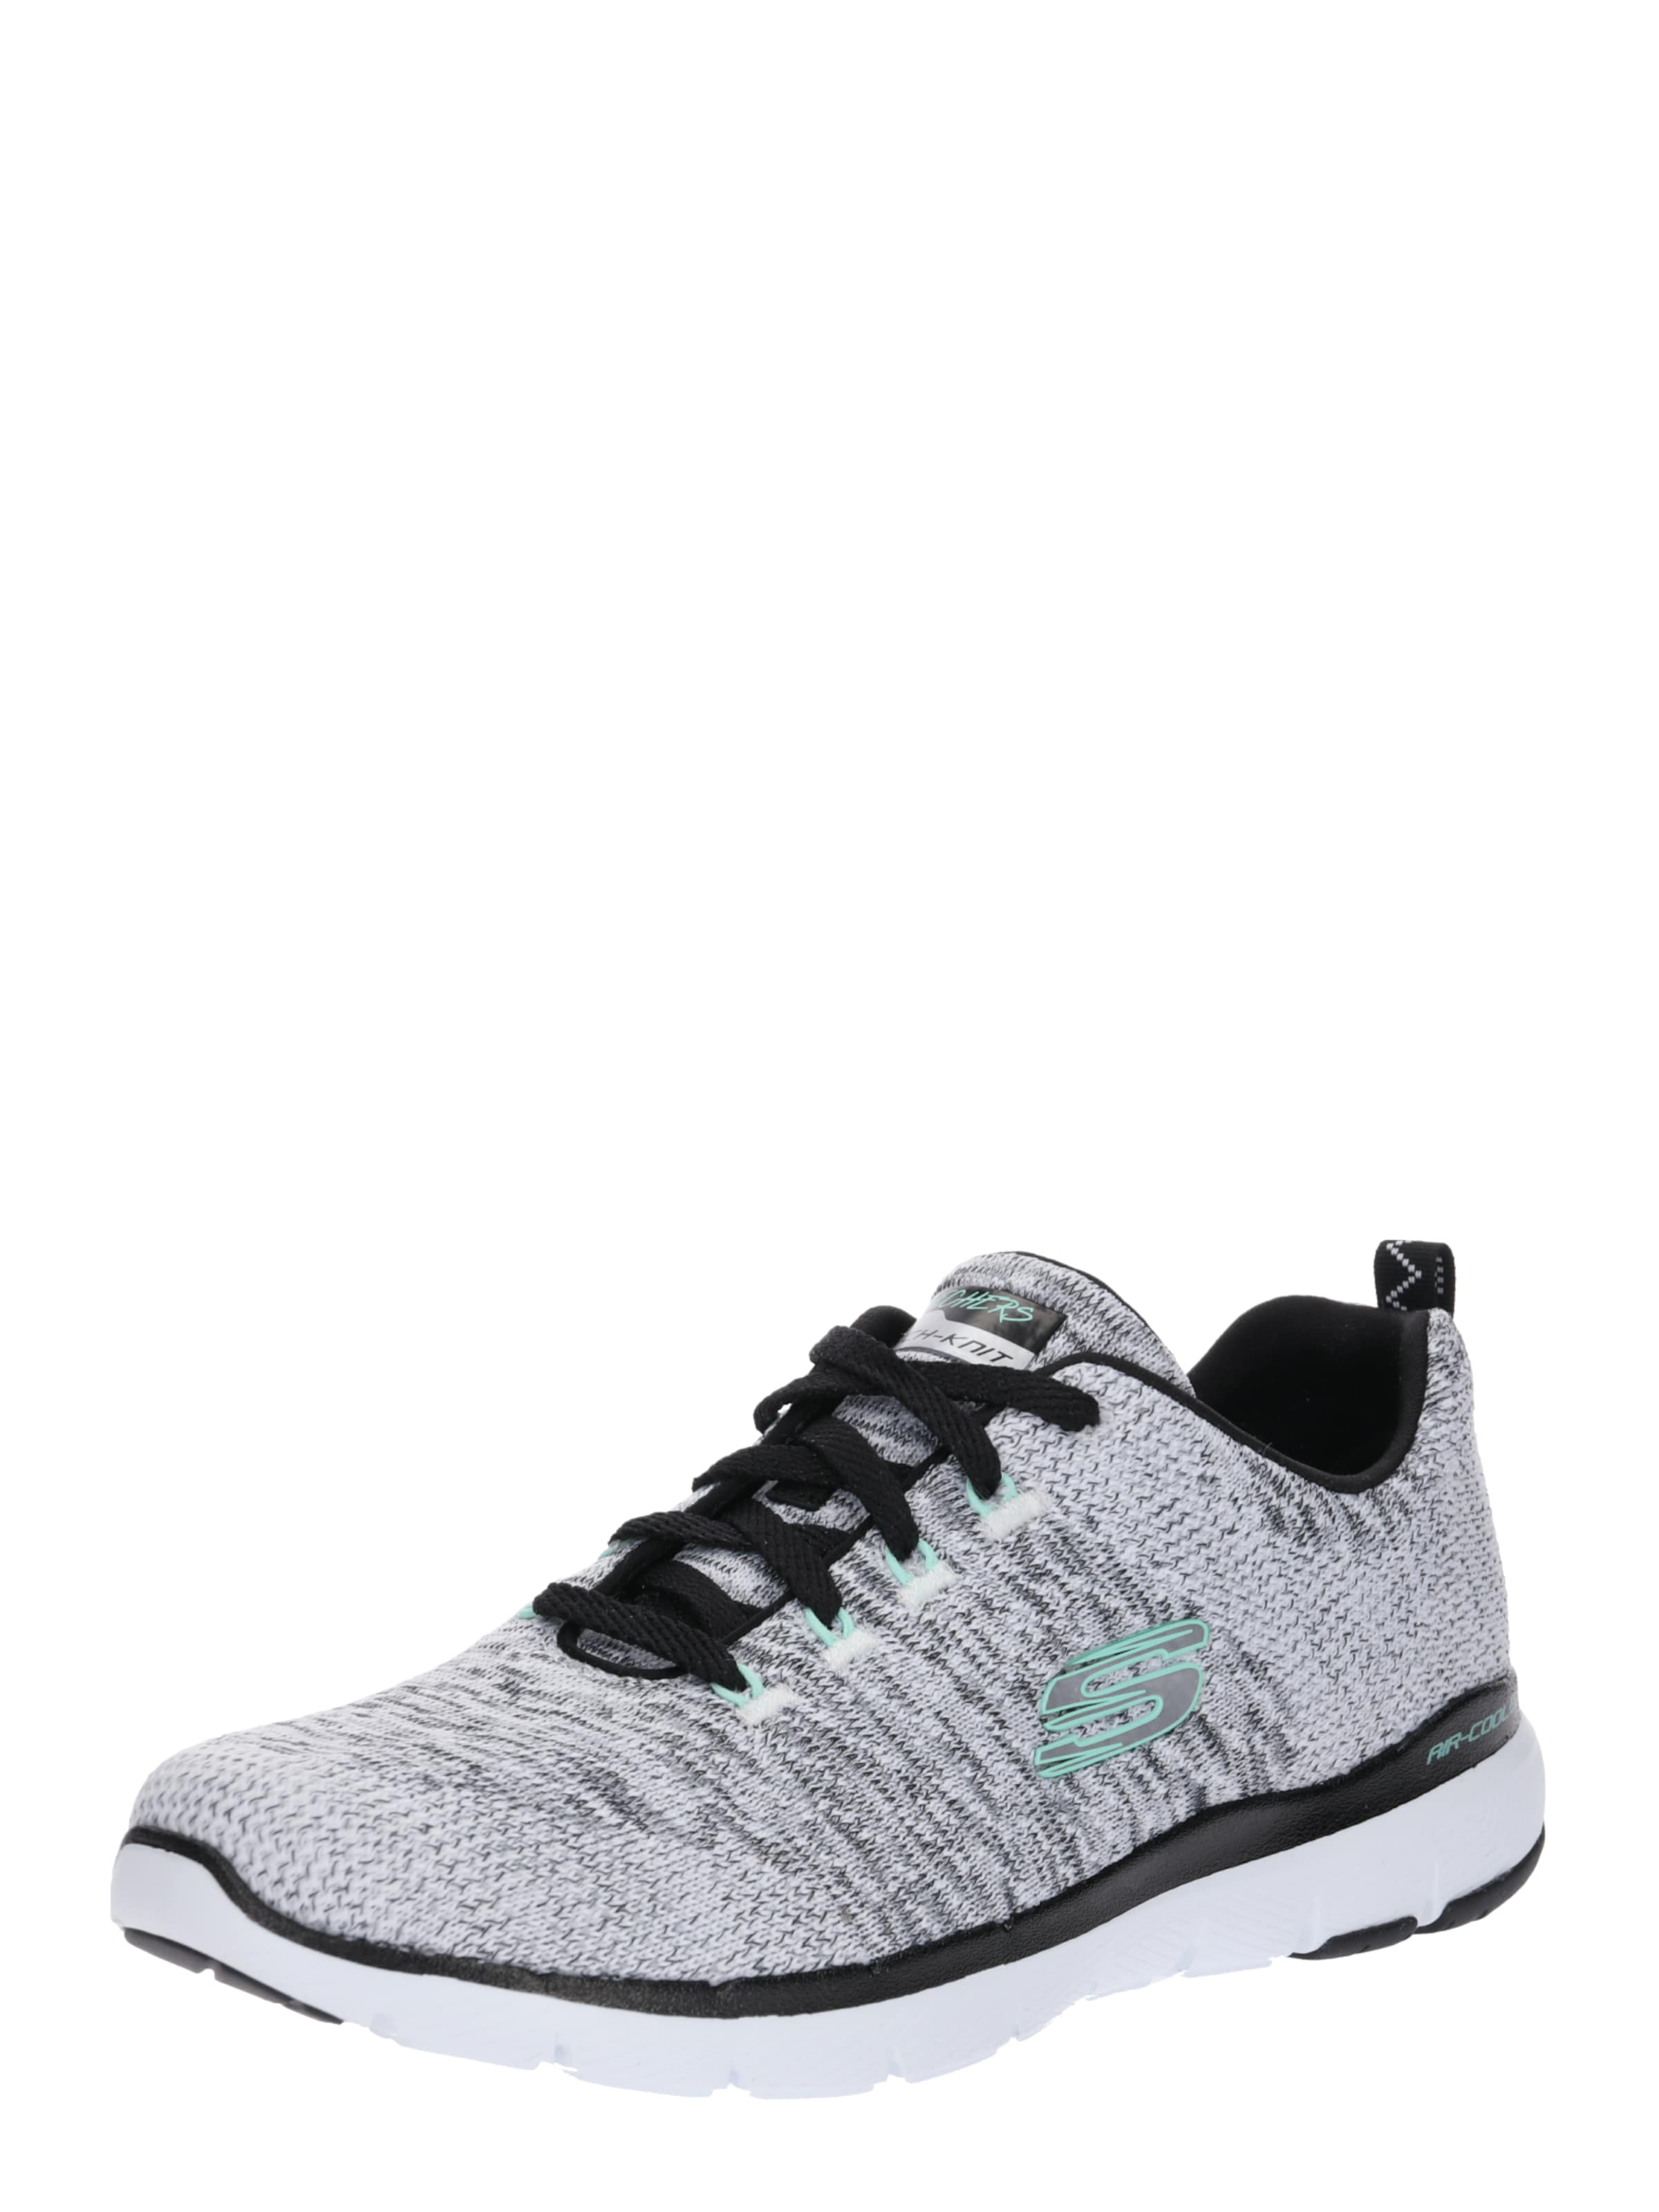 3 0' In Anthrazit Skechers Appeal Sneaker 'flex Y6vIgyfb7